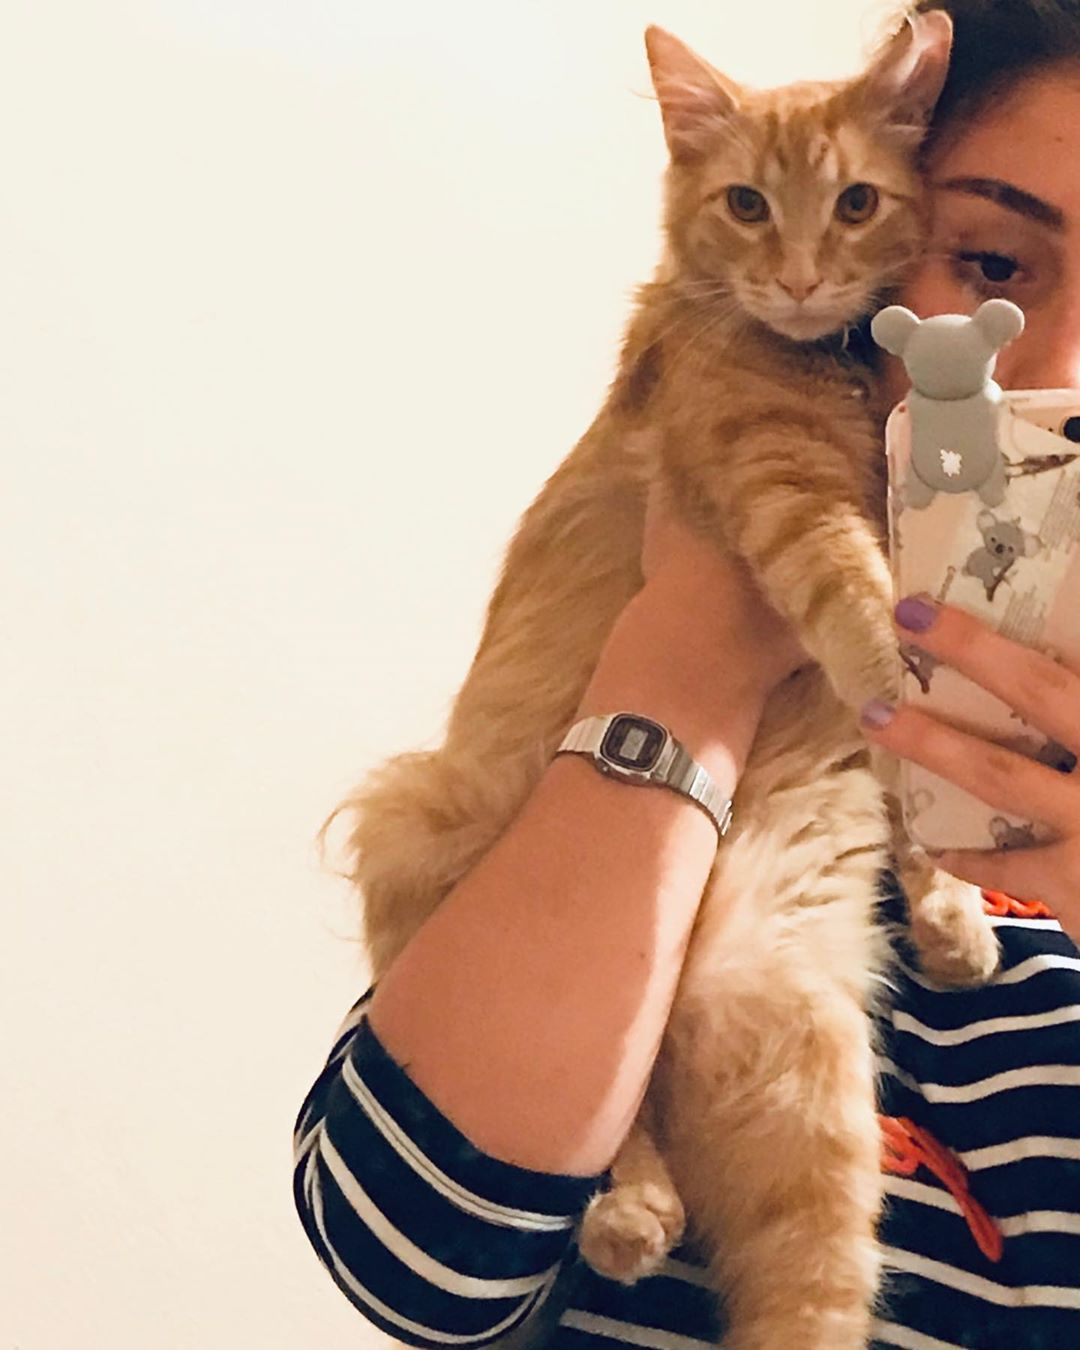 My Cat Wont Eat Or Drink What Can That Mean Cute Cat Gif Kittens Cute Cats And Kittens